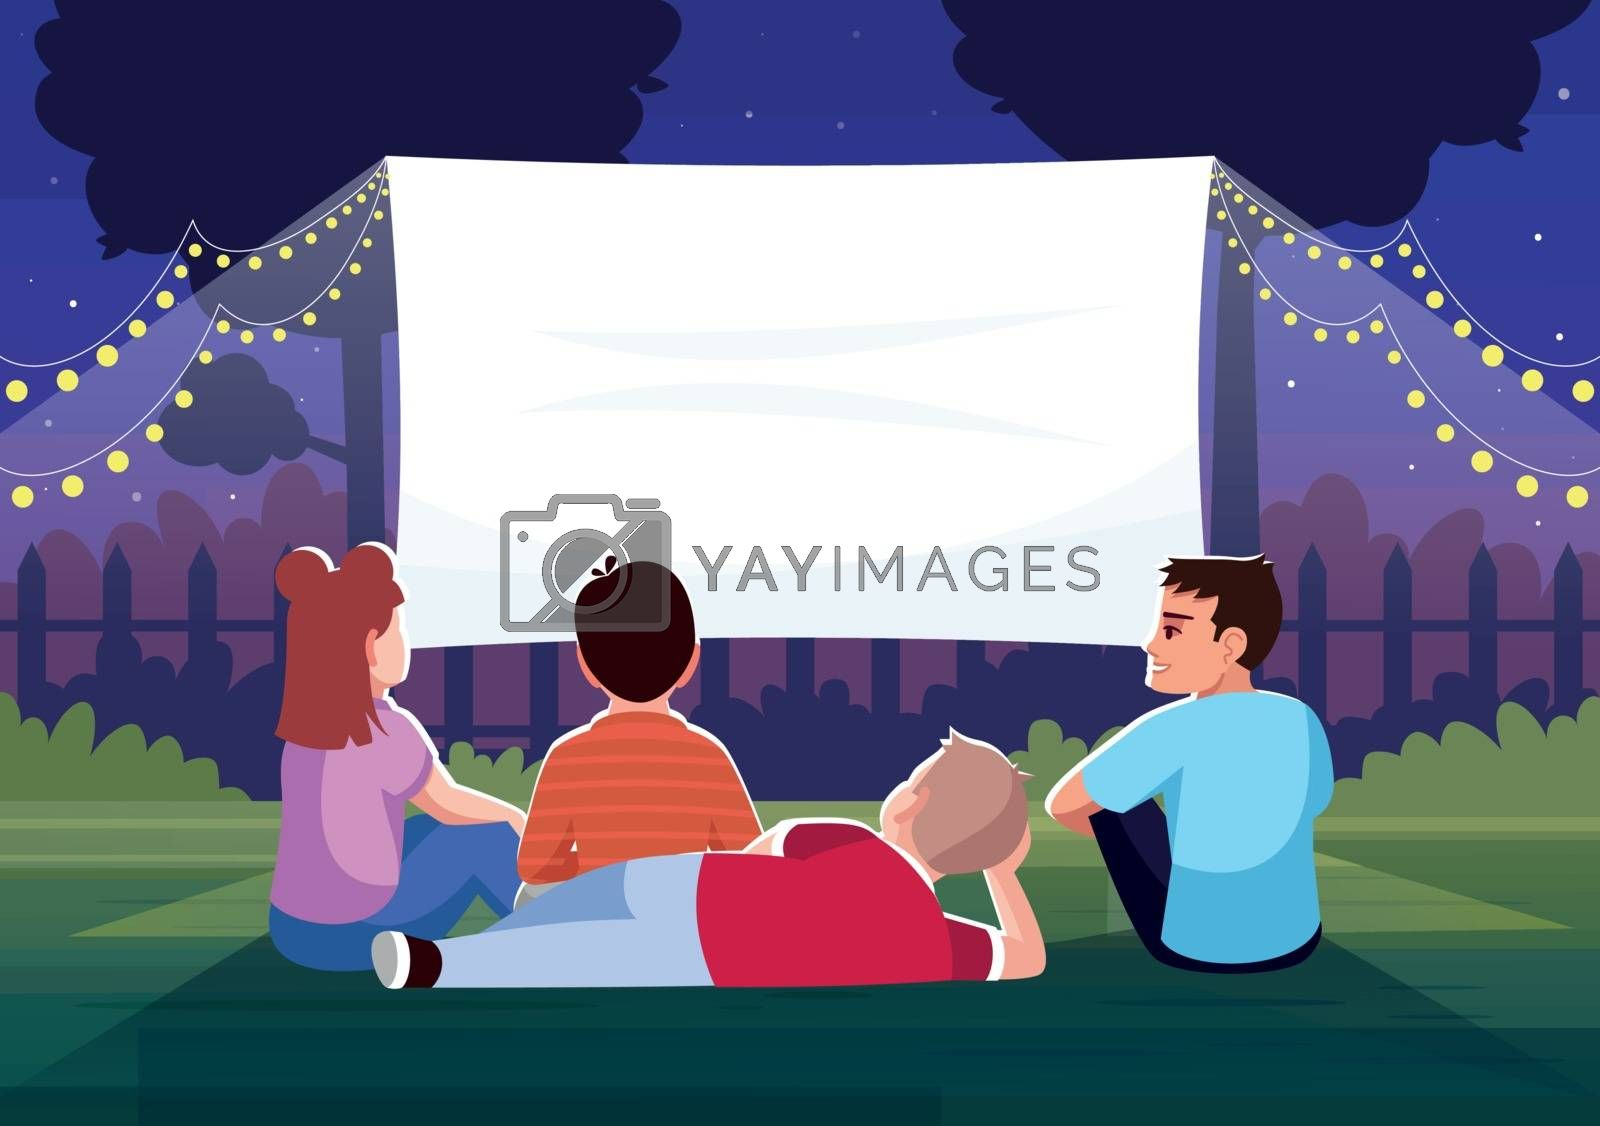 Backyard cinema for kids semi flat vector illustration. Teenagers watch film together. Large blank screen for movie night. Children outside 2D cartoon characters for commercial use